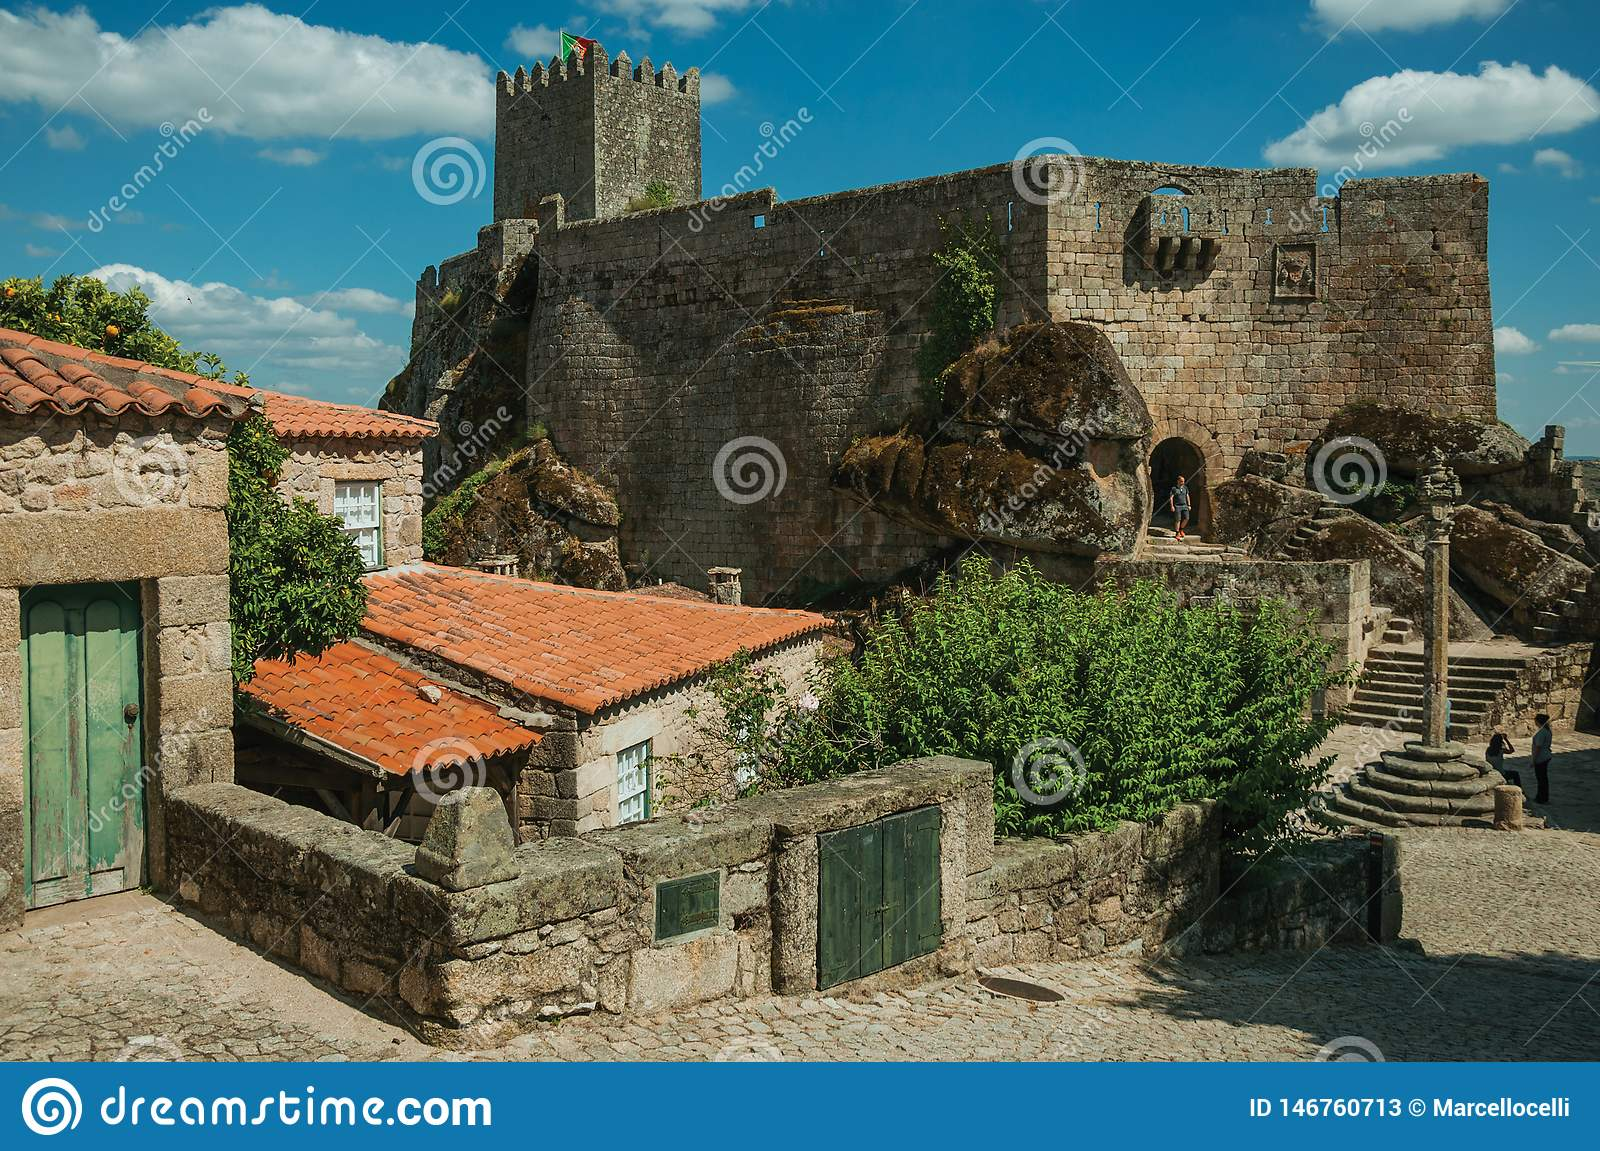 Castle and old houses encircling square with pillory